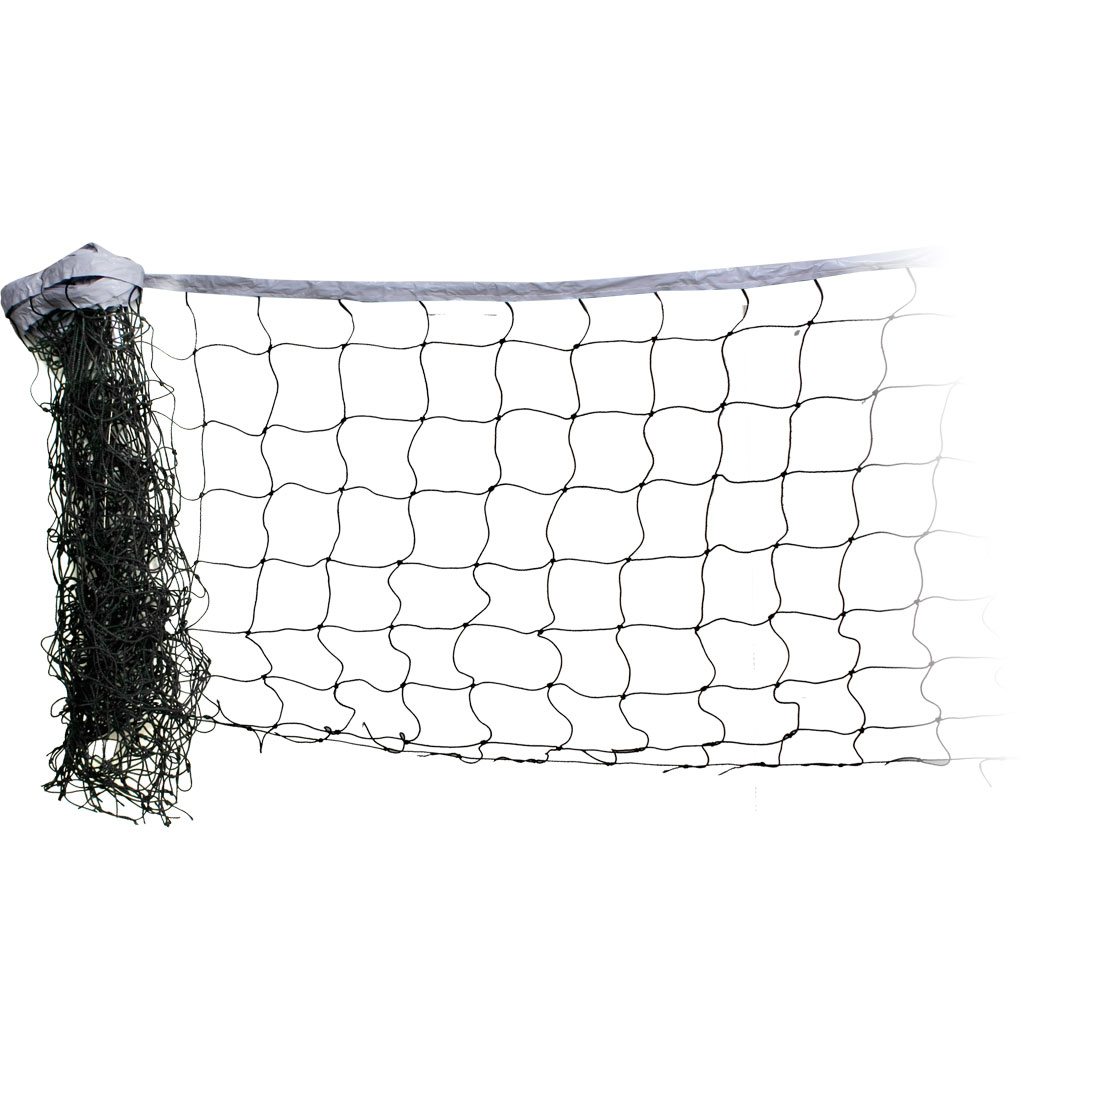 Official Replacement Steel Strap Match Volleyball Net 9.6M x 0.73M